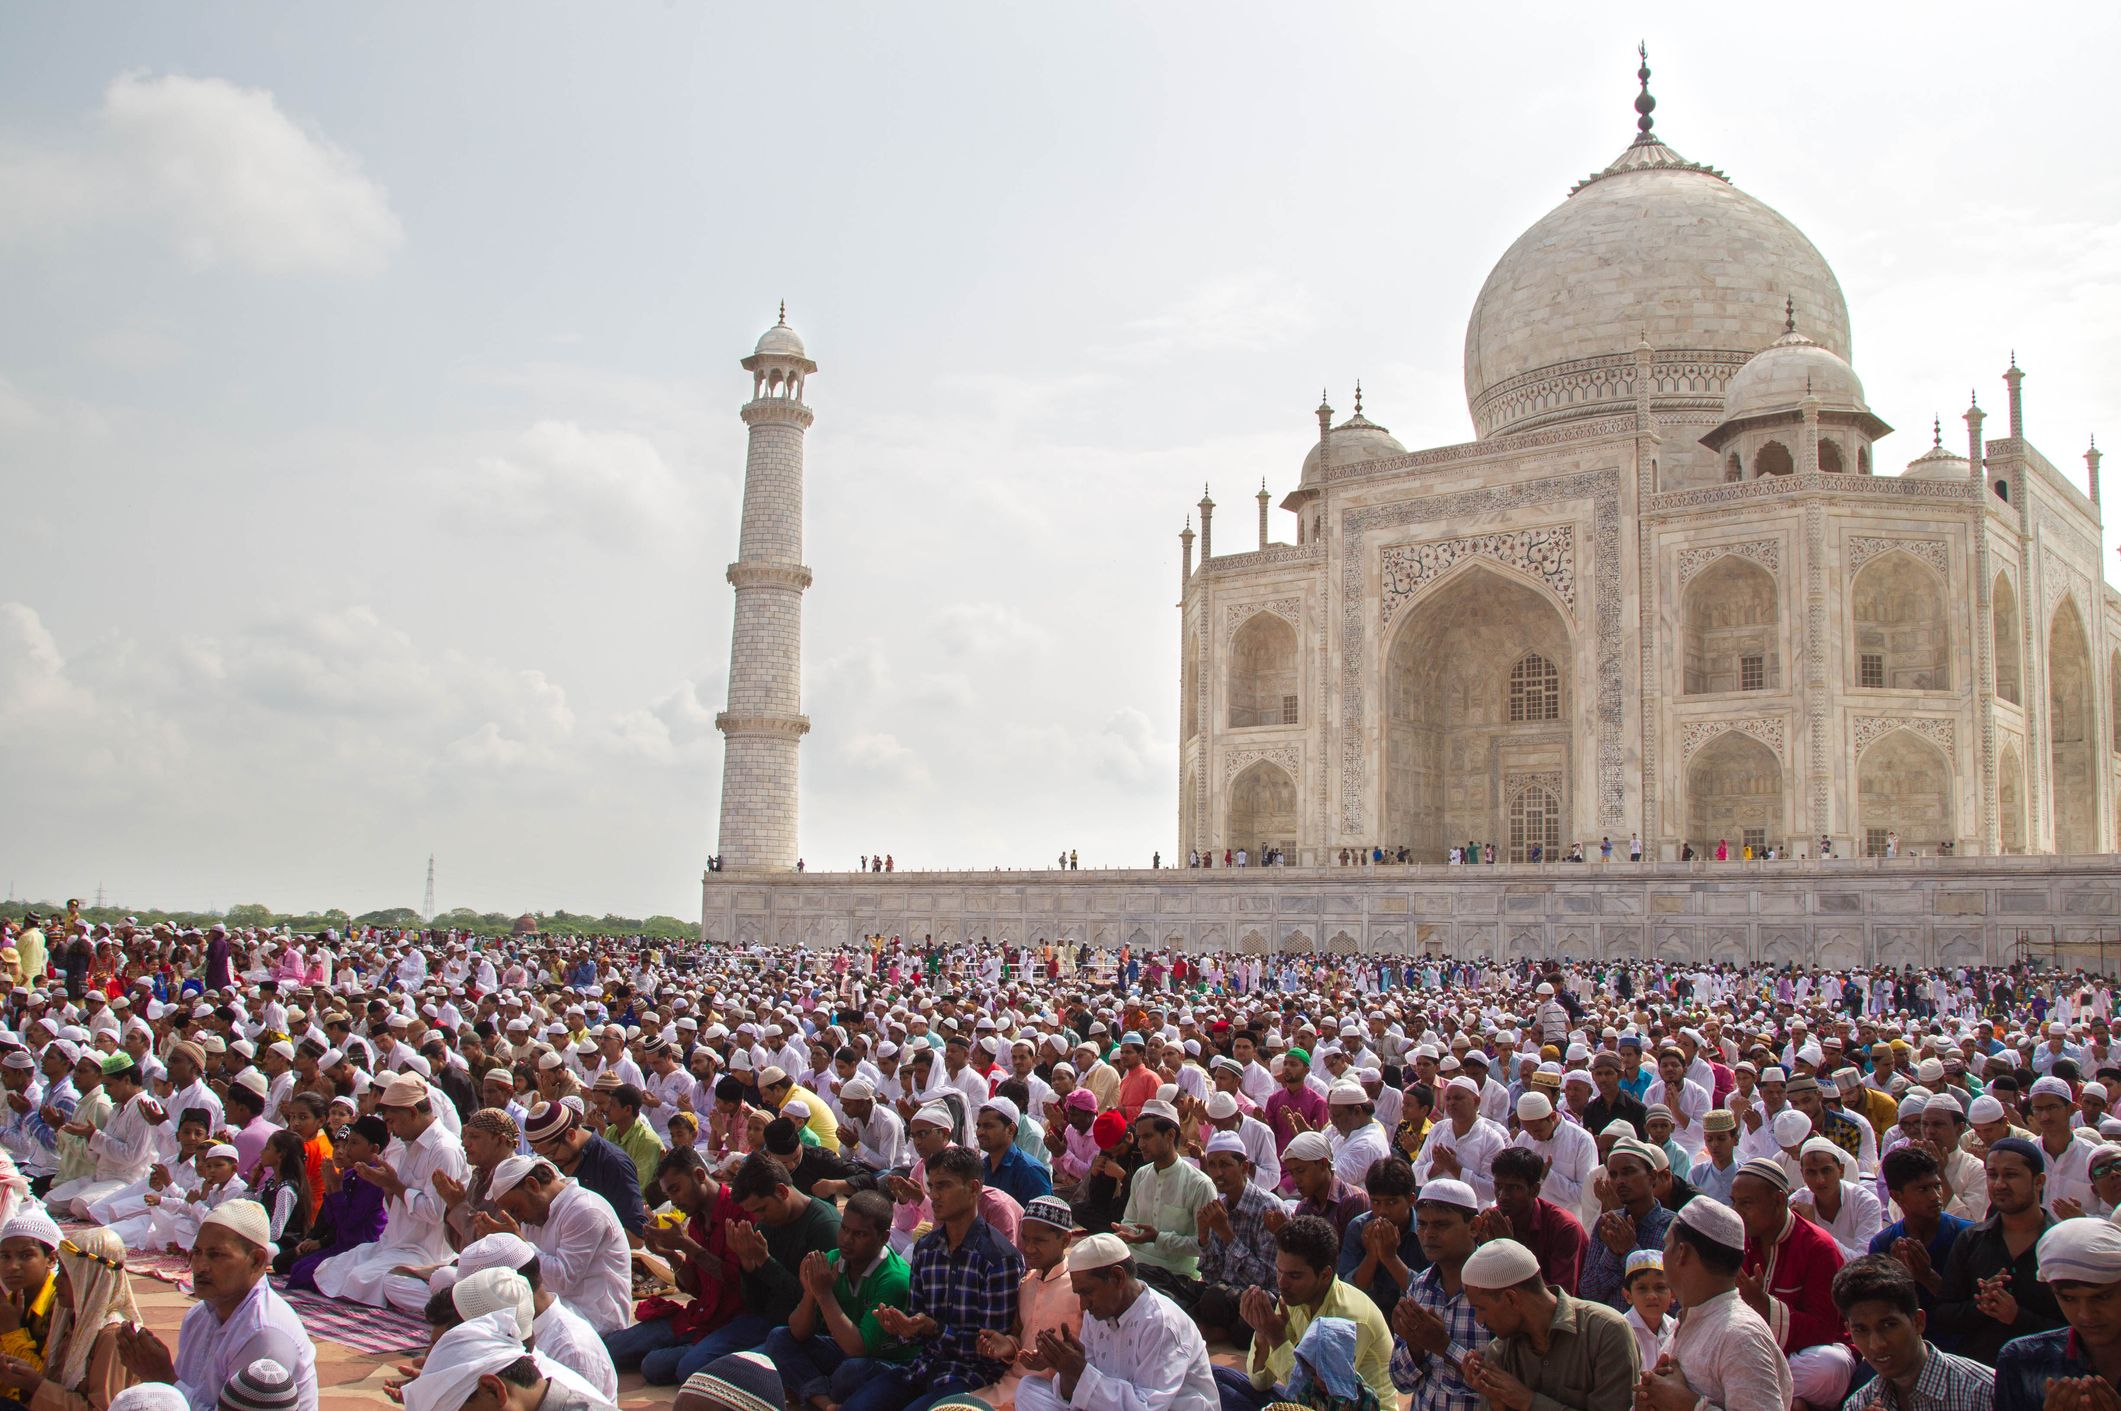 11 Things You Might Not Know About Eid Al-Fitr | Mental Floss